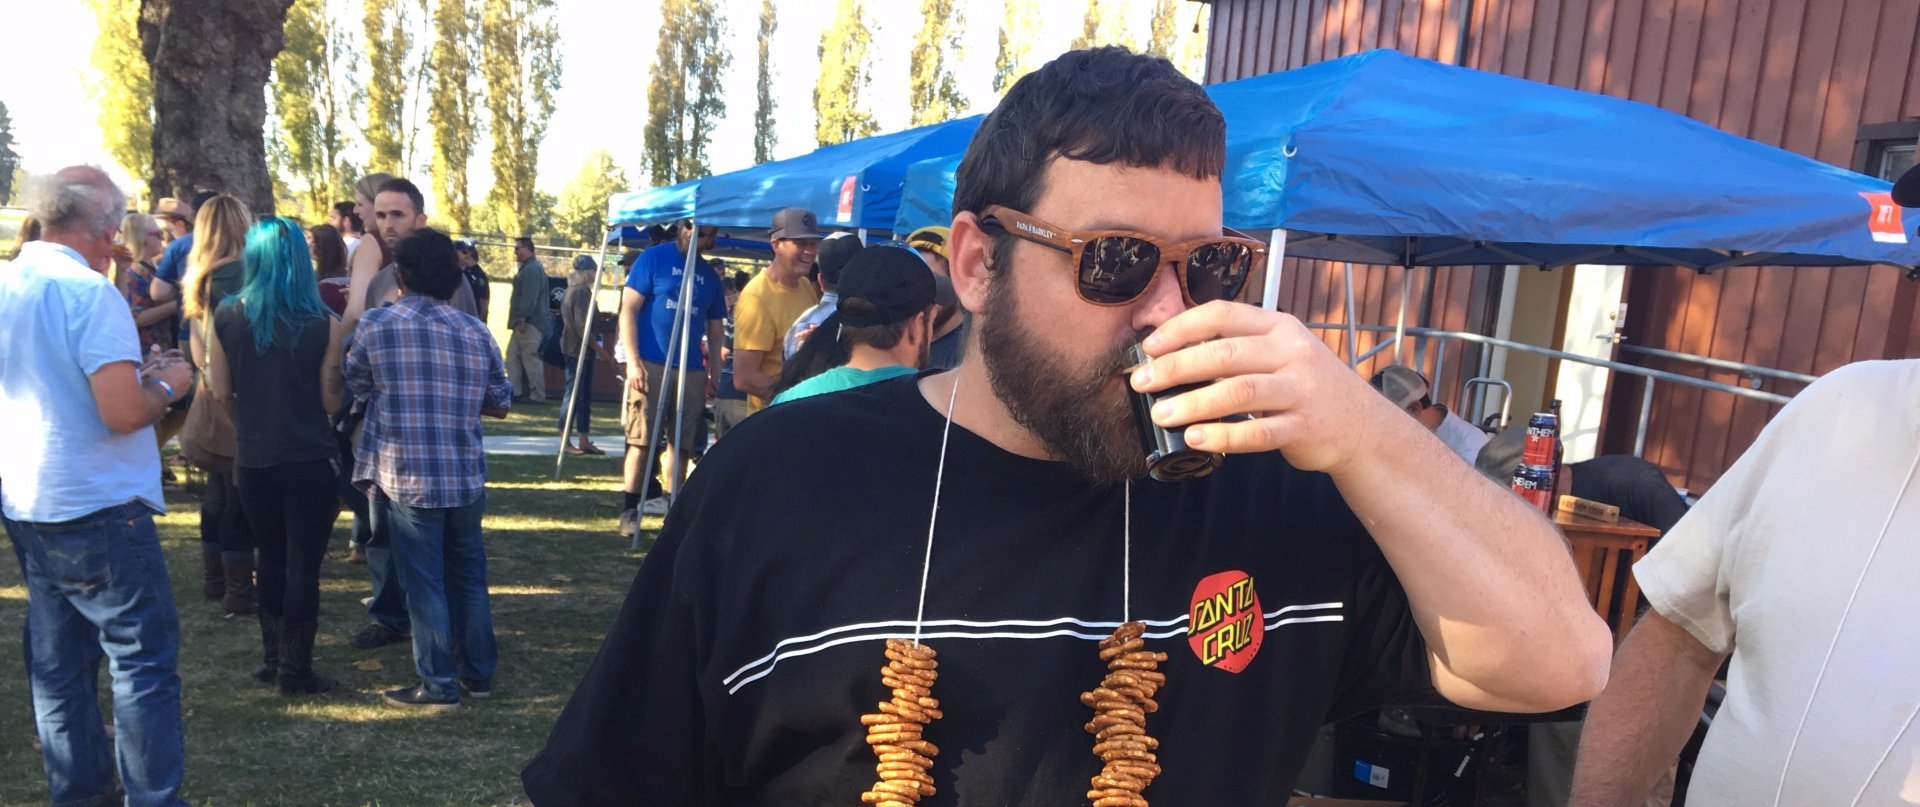 Russ Janak rocking his pretzel necklace while sipping good brew at the 17th annual Hoptoberfest on Oct. 14th. Photo credit: Juan Herrera